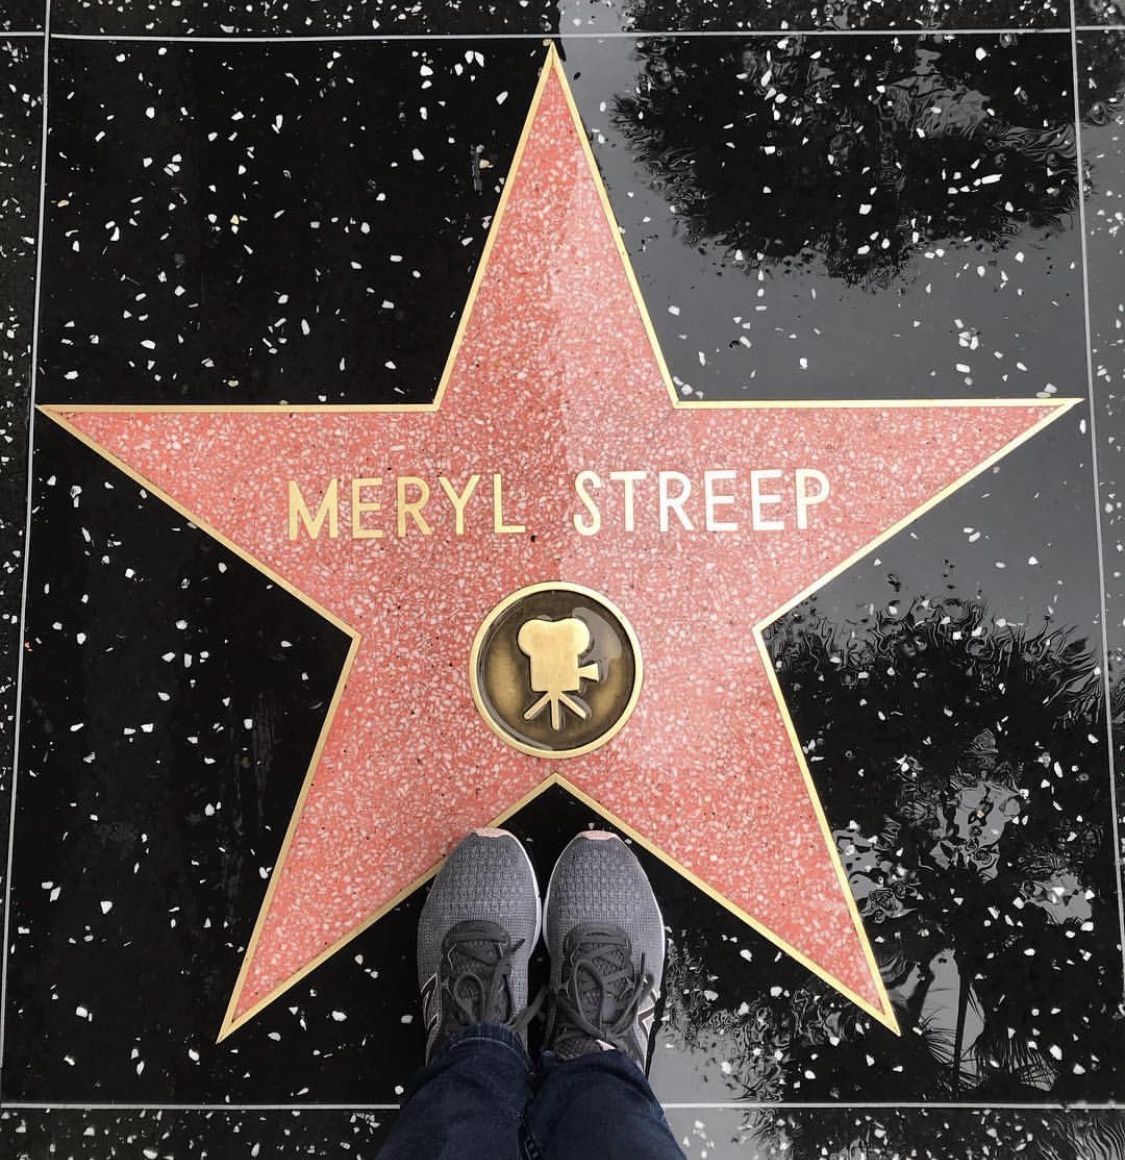 2226 Looking Down Meryl Streep S Star On The Hollywood Walk Of Fame Meryl Streep Hollywood Walk Of Fame Walk Of Fame